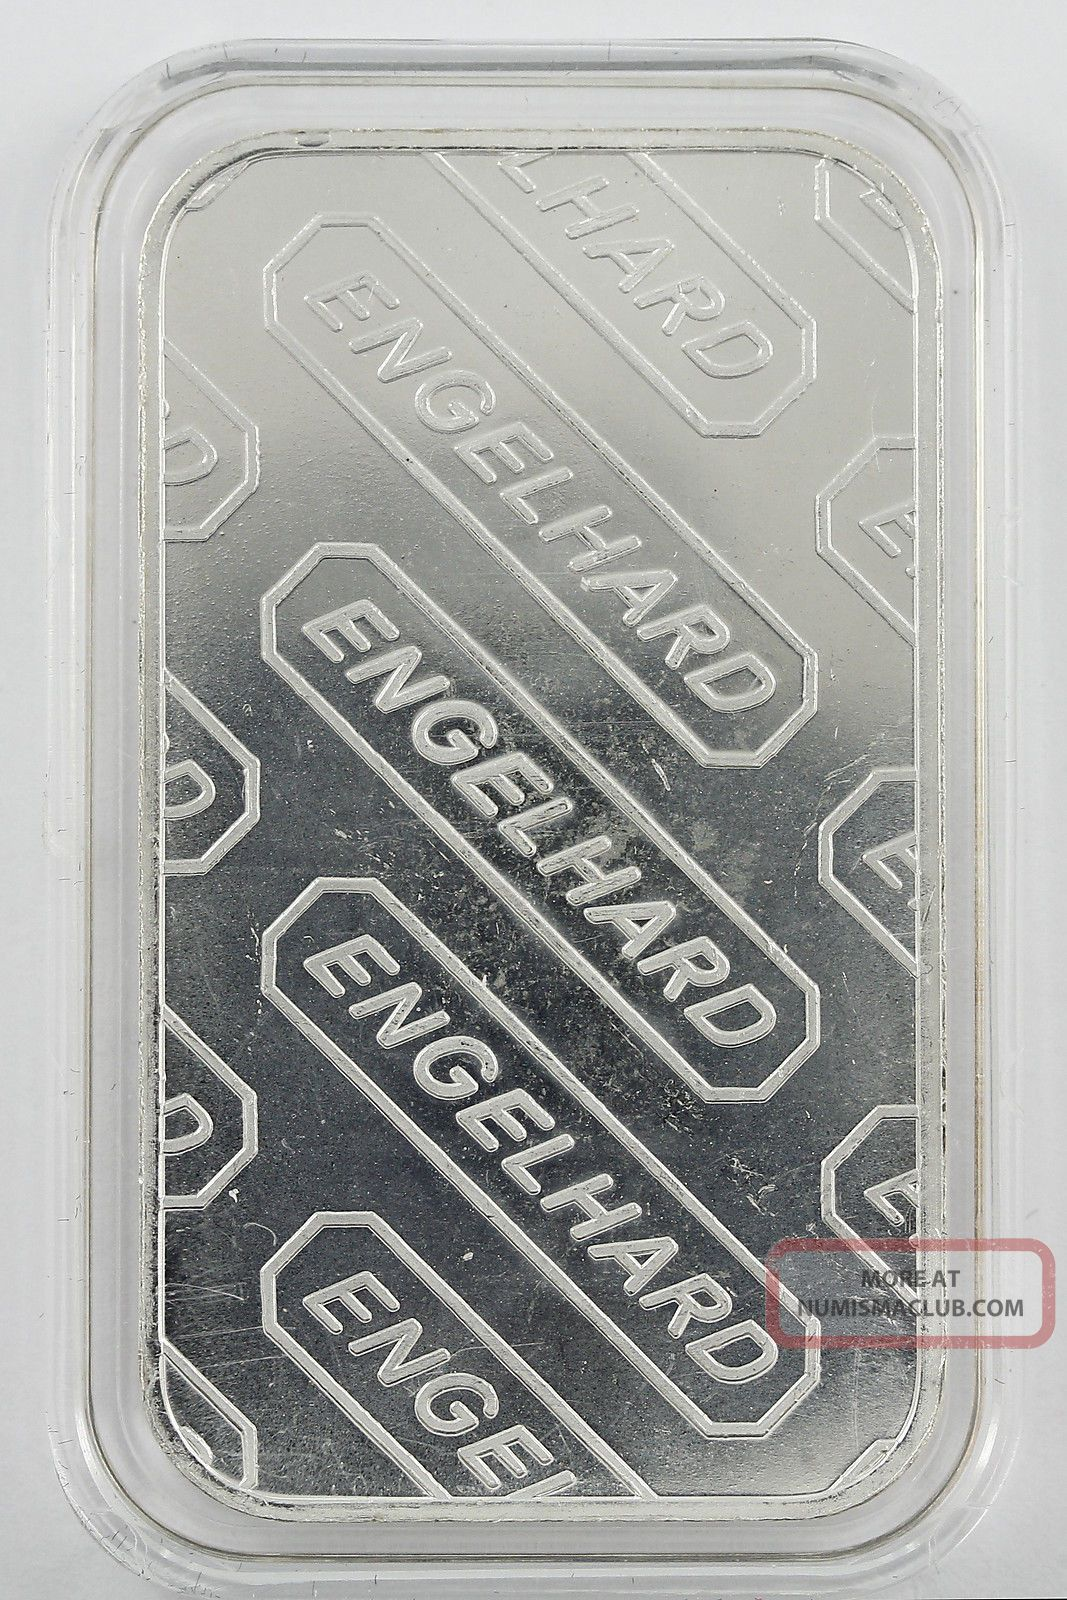 1 Oz Silver Bullion Engelhard 1 Troy Ounce 999 Fine